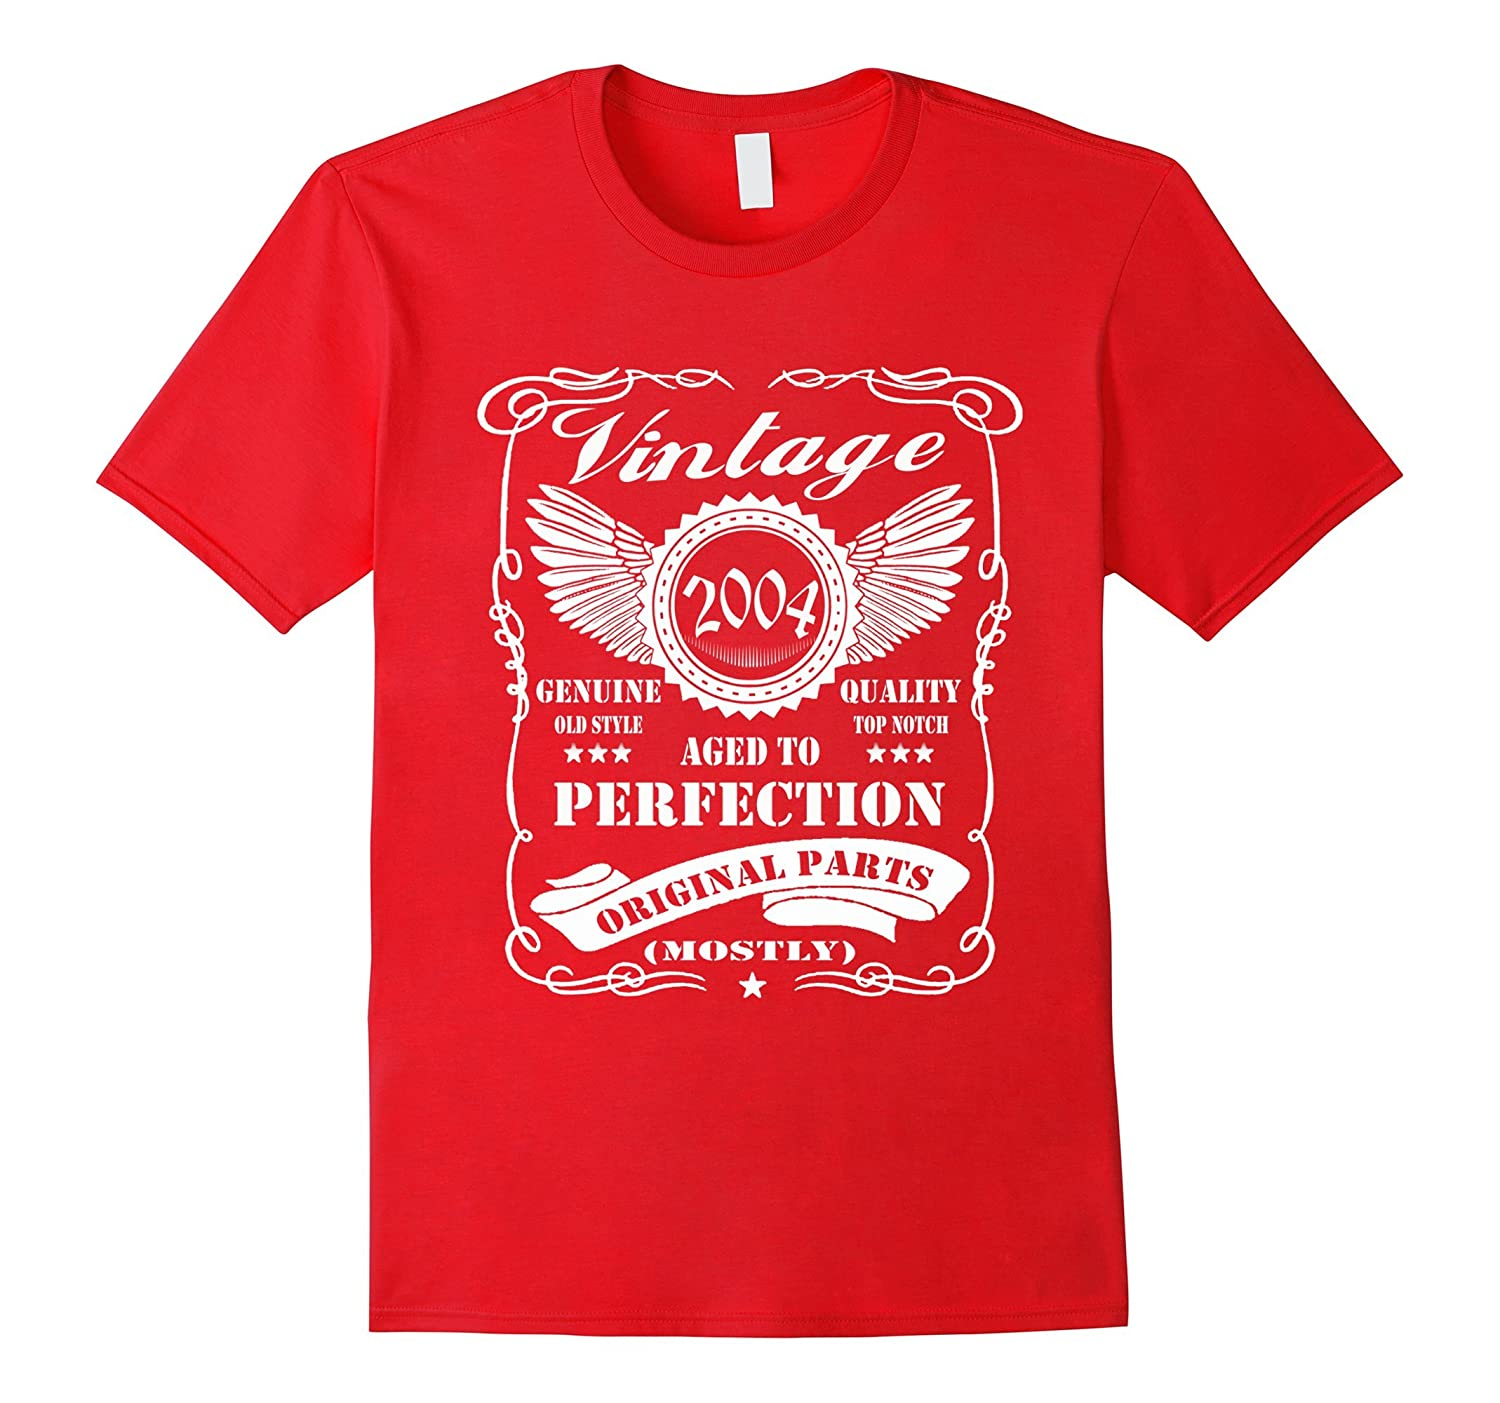 13th years Vintage Made in 2004 Gift ideas Funny T shirt-TH